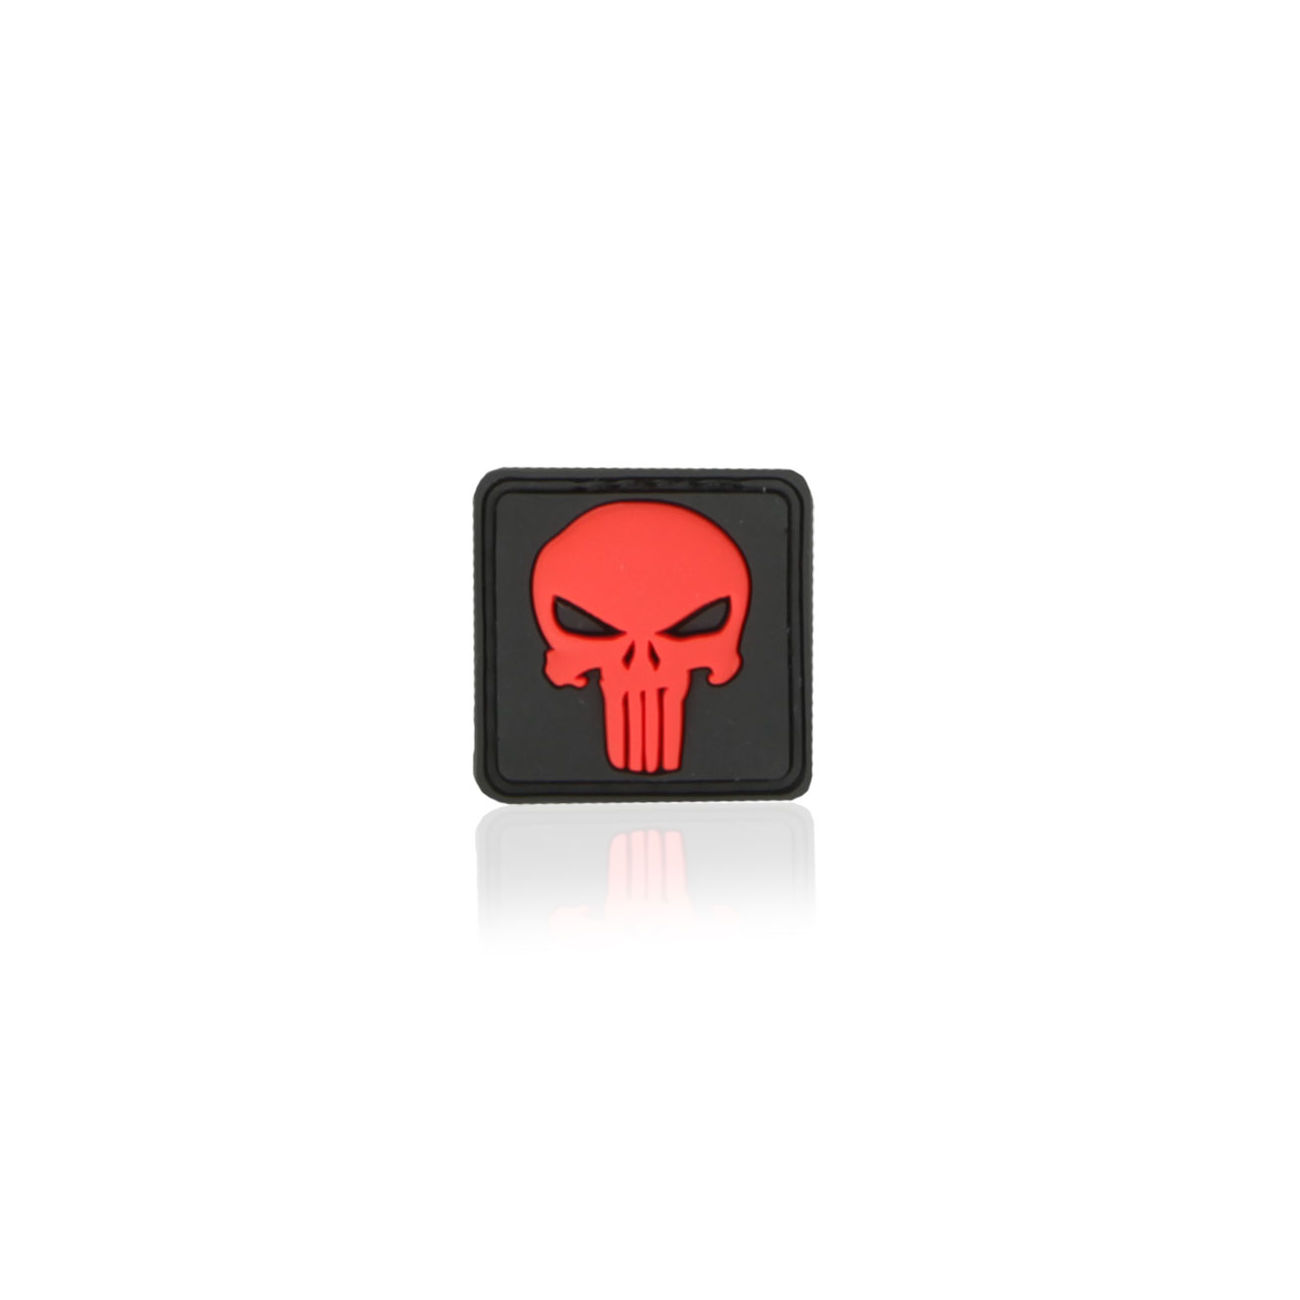 3D Rubber Patch Punisher blackmedic 0